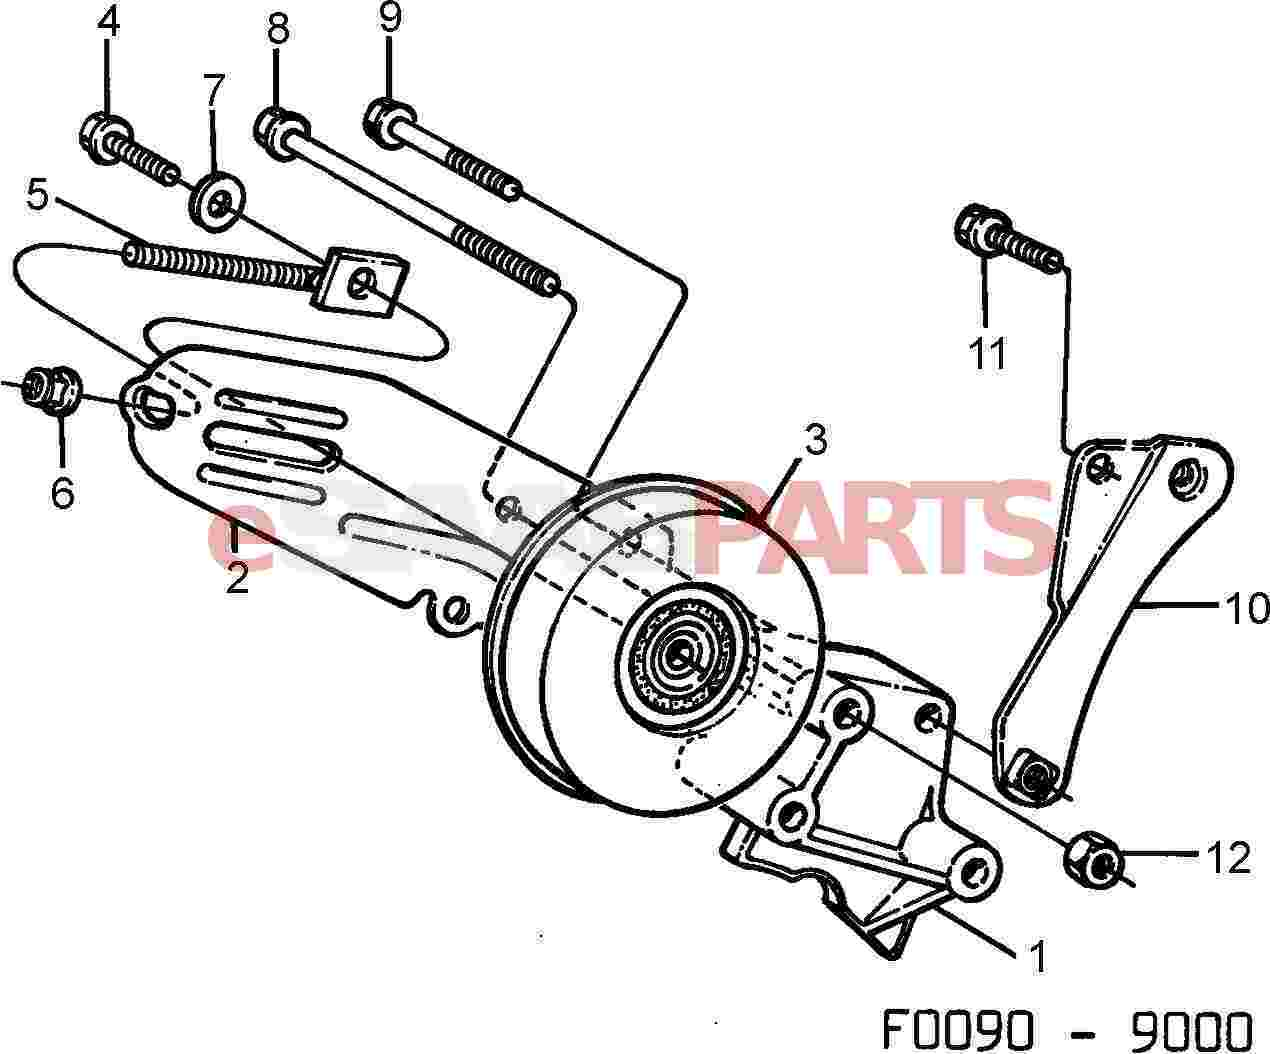 2002 saab 9 3 engine diagram